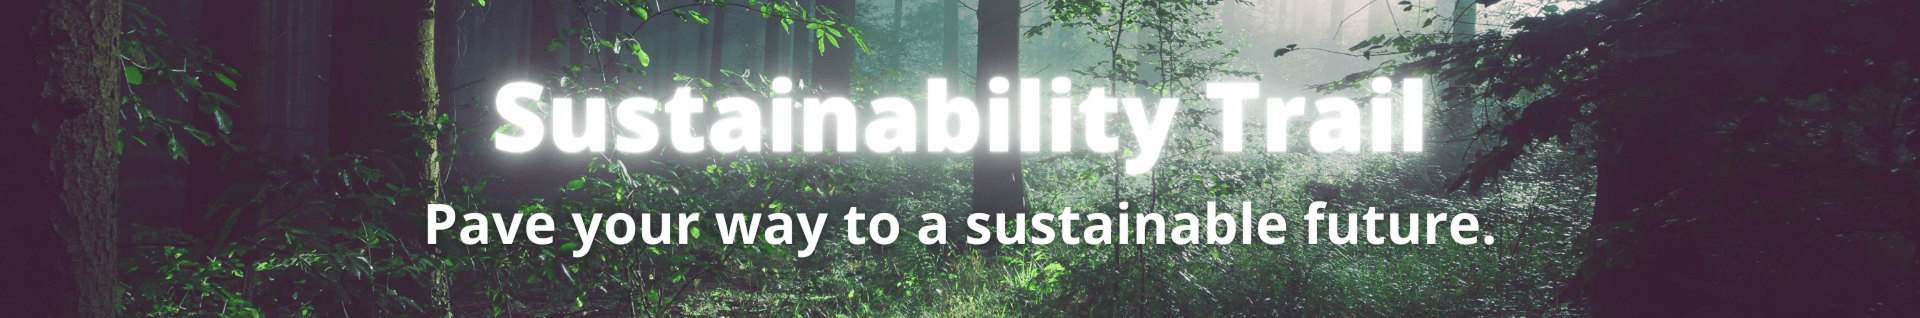 Sustainability Trail. Pave your way to a sustainable future.